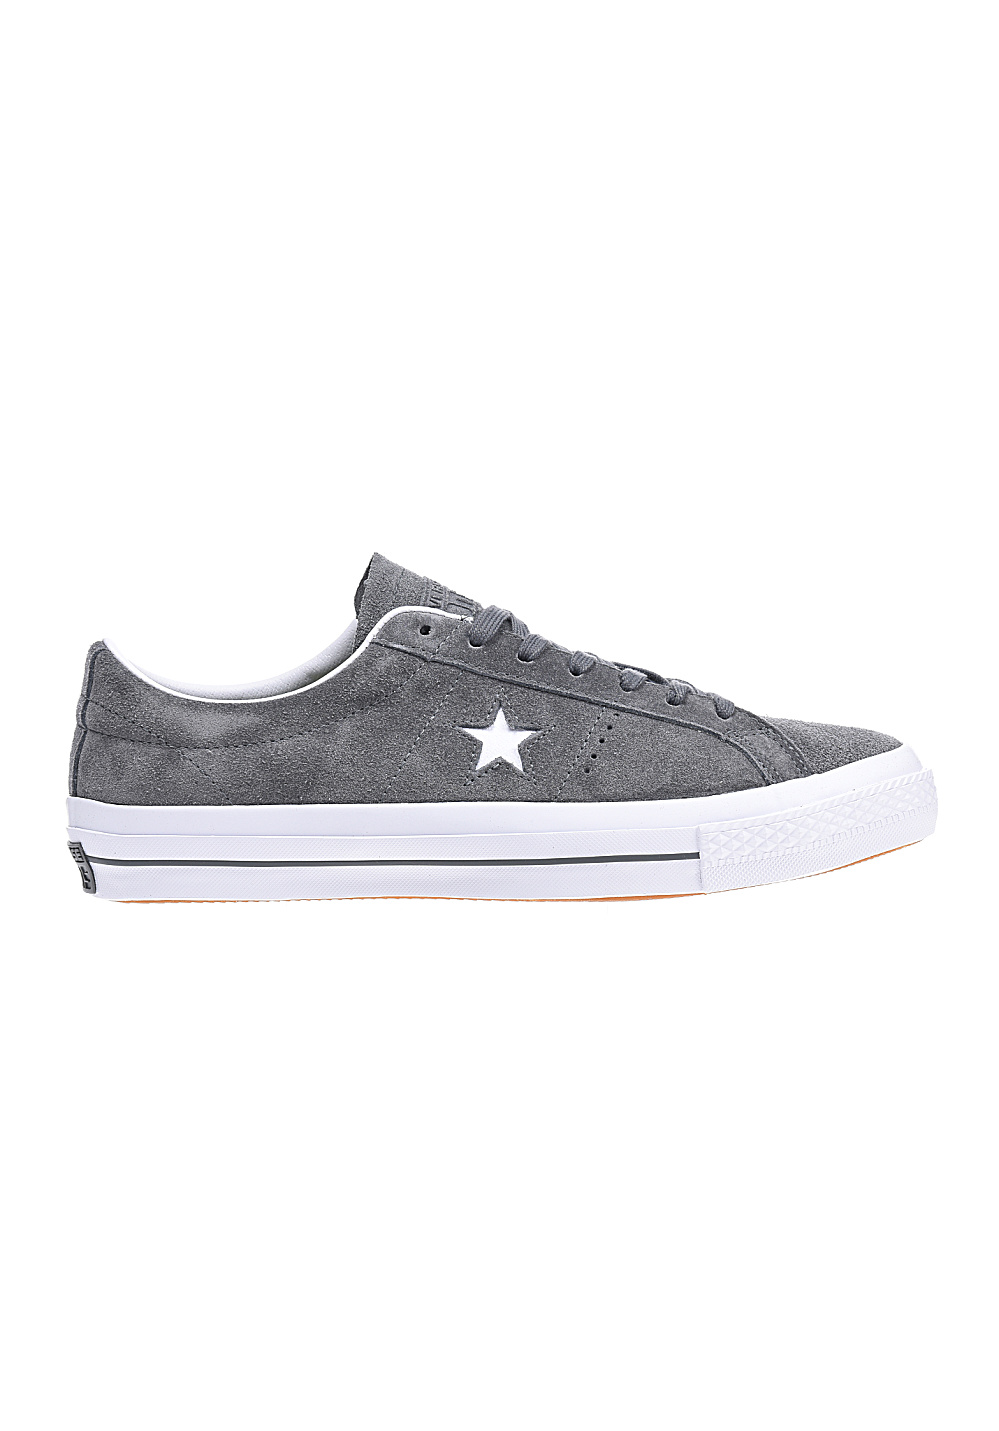 converse one star grise